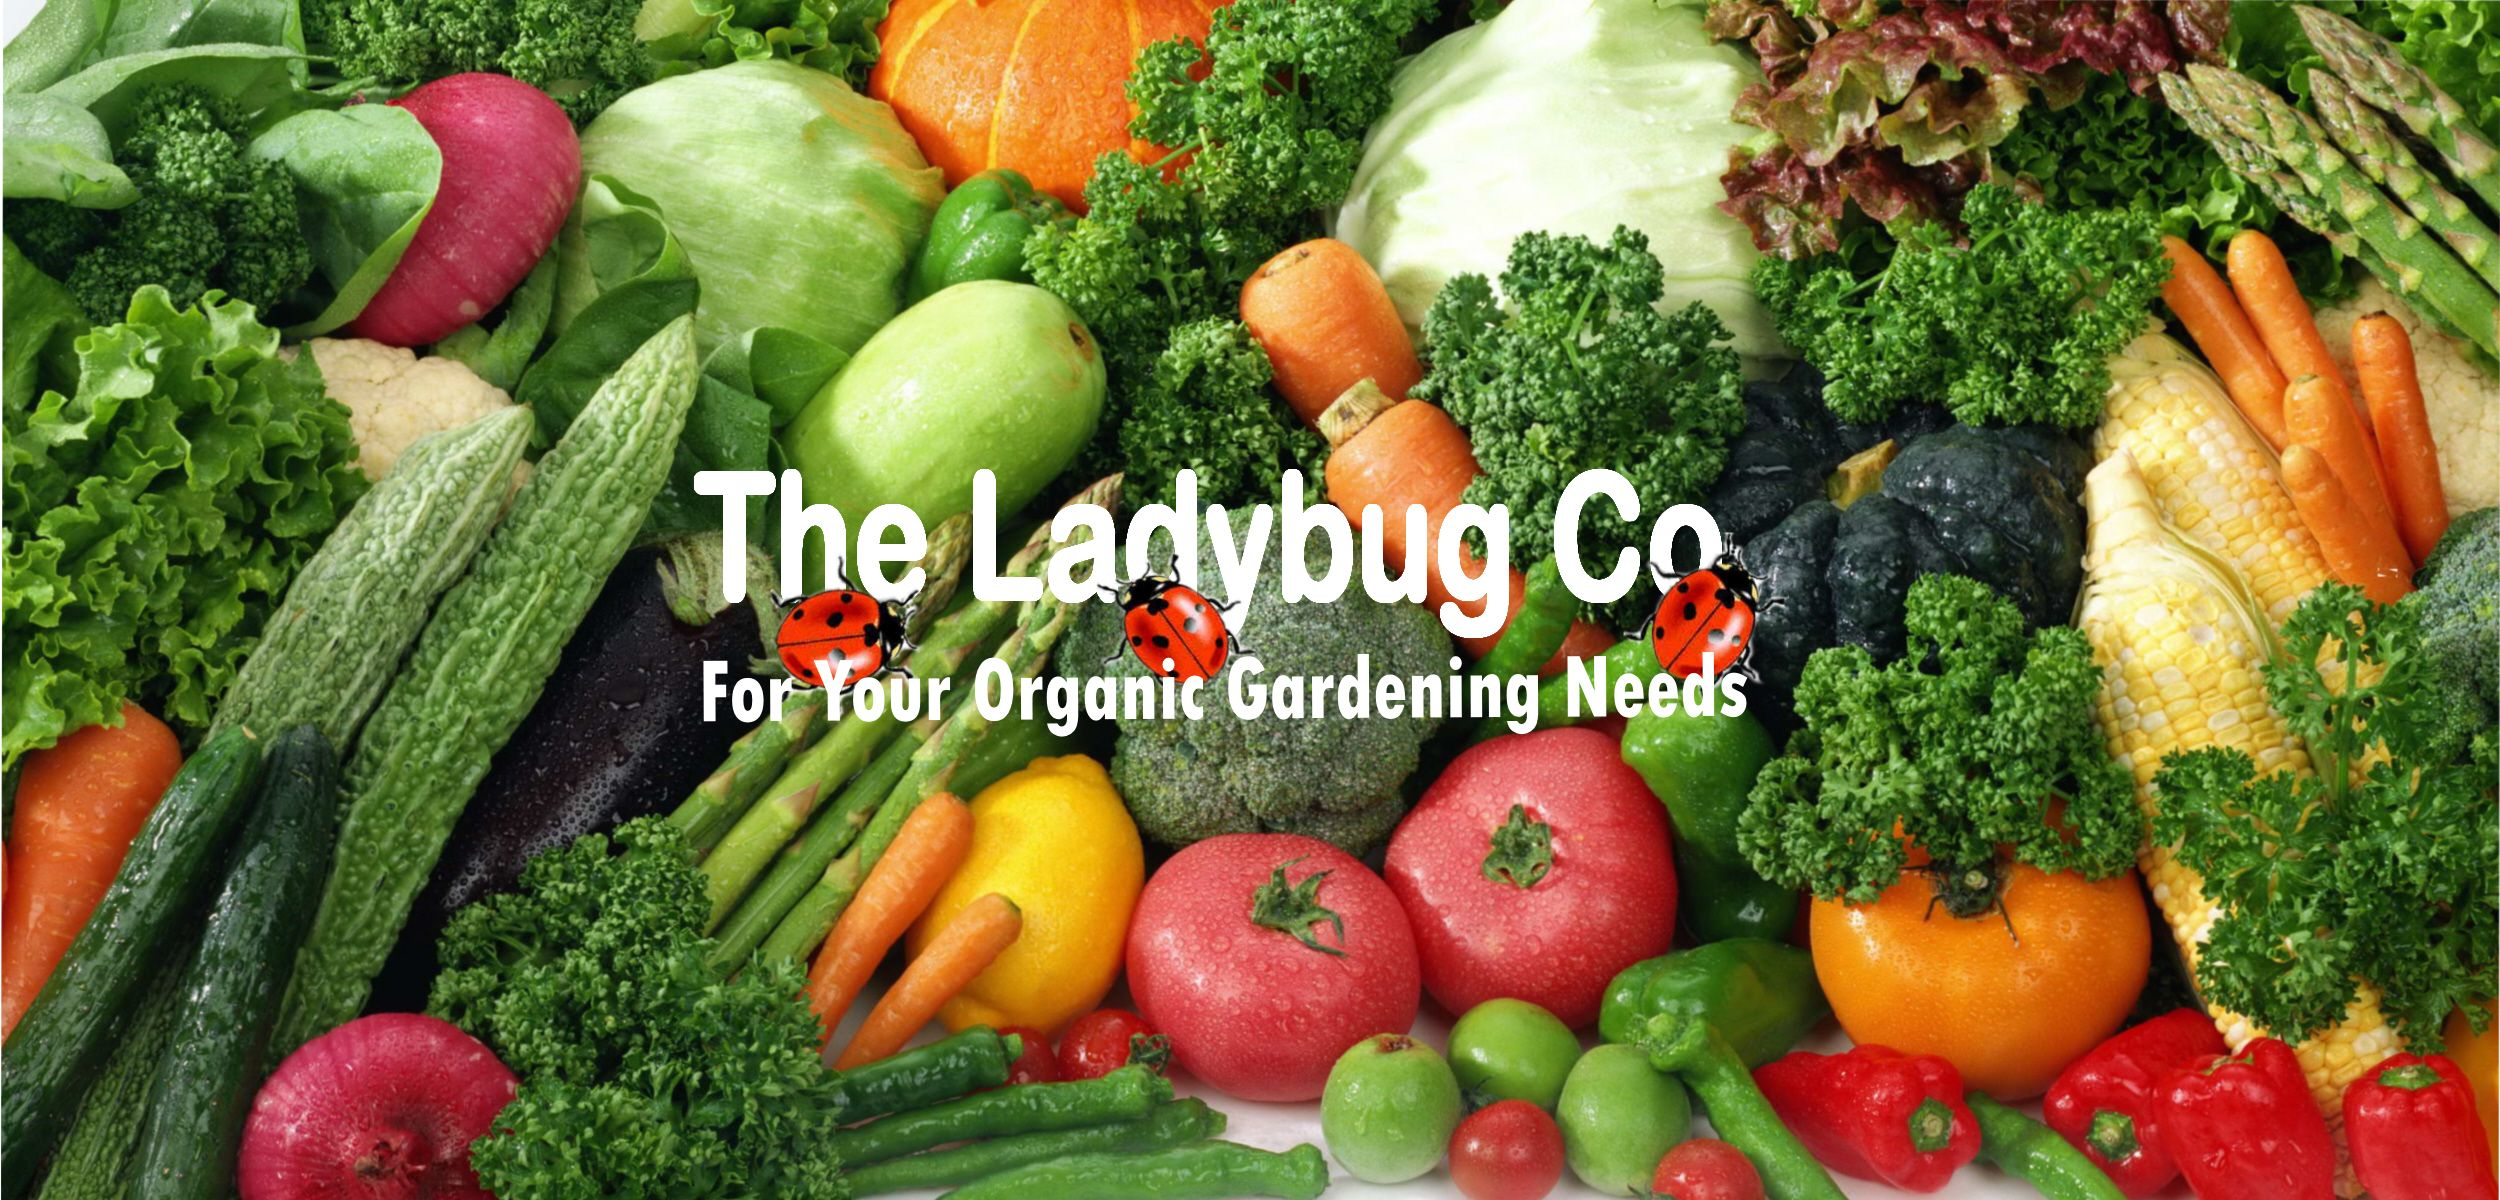 Pin by The Ladybug Company on Multi Media Healthy